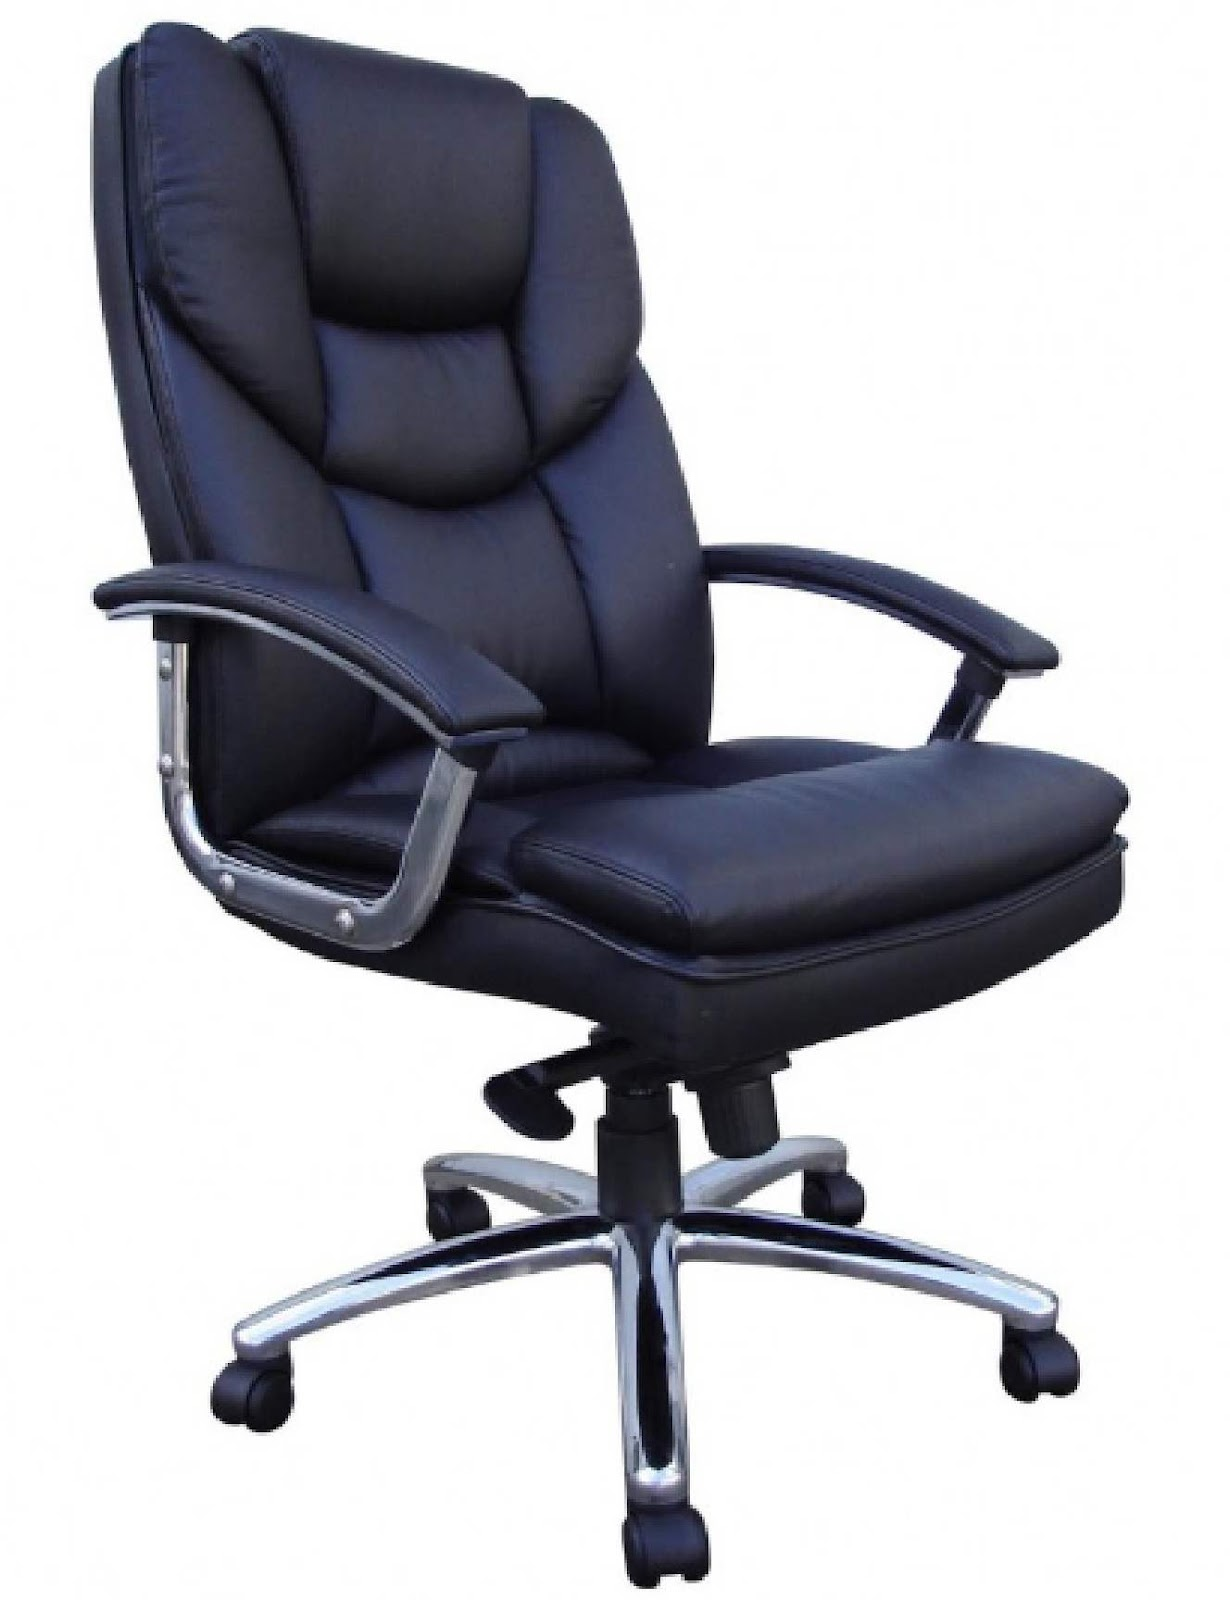 Office furniture canada business services - Office chairs for small spaces image ...